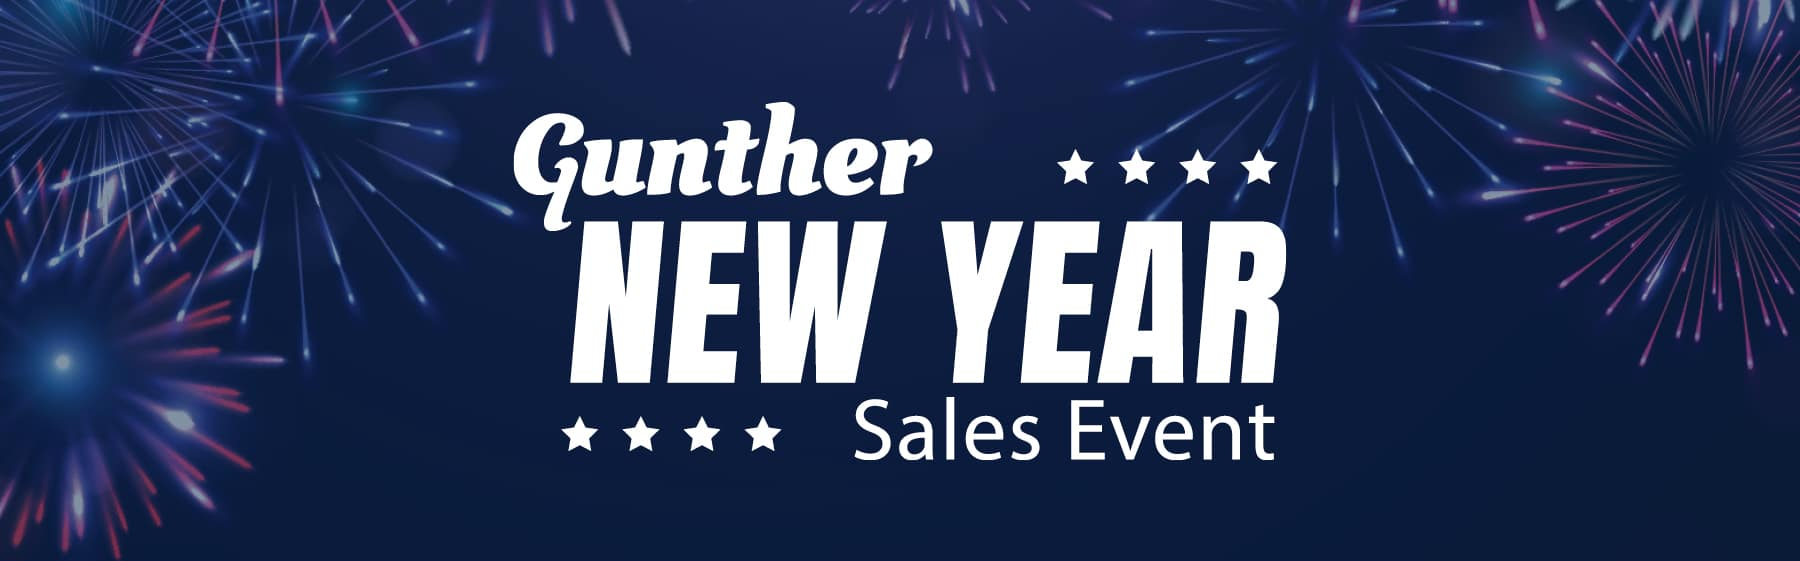 Gunther New Years Sales Event